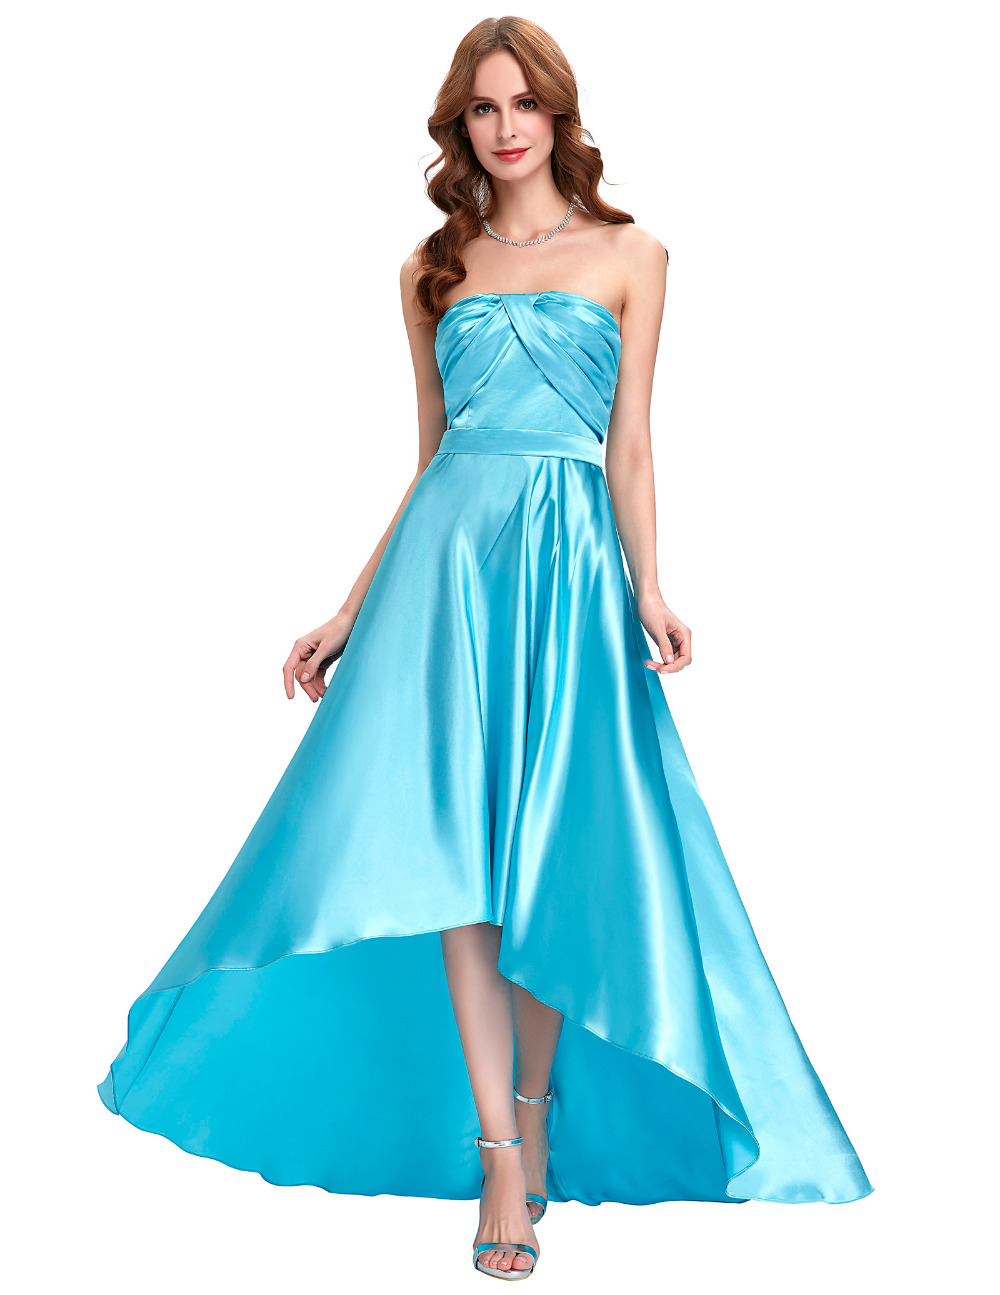 Kate Kasin High Low Evening Dresses Long Satin Strapless Party ...